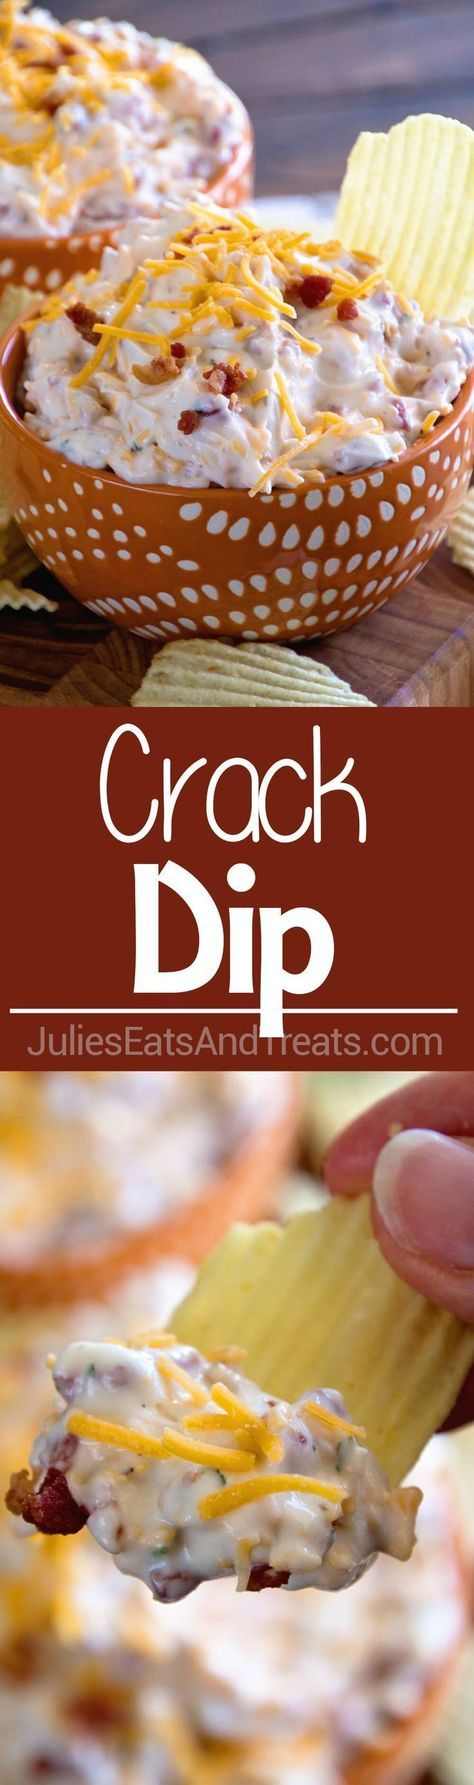 Crack Dip ~ Super Simple Chip Dip Loaded with Cheese, Bacon, Ranch and Sour Cream! via /julieseats/